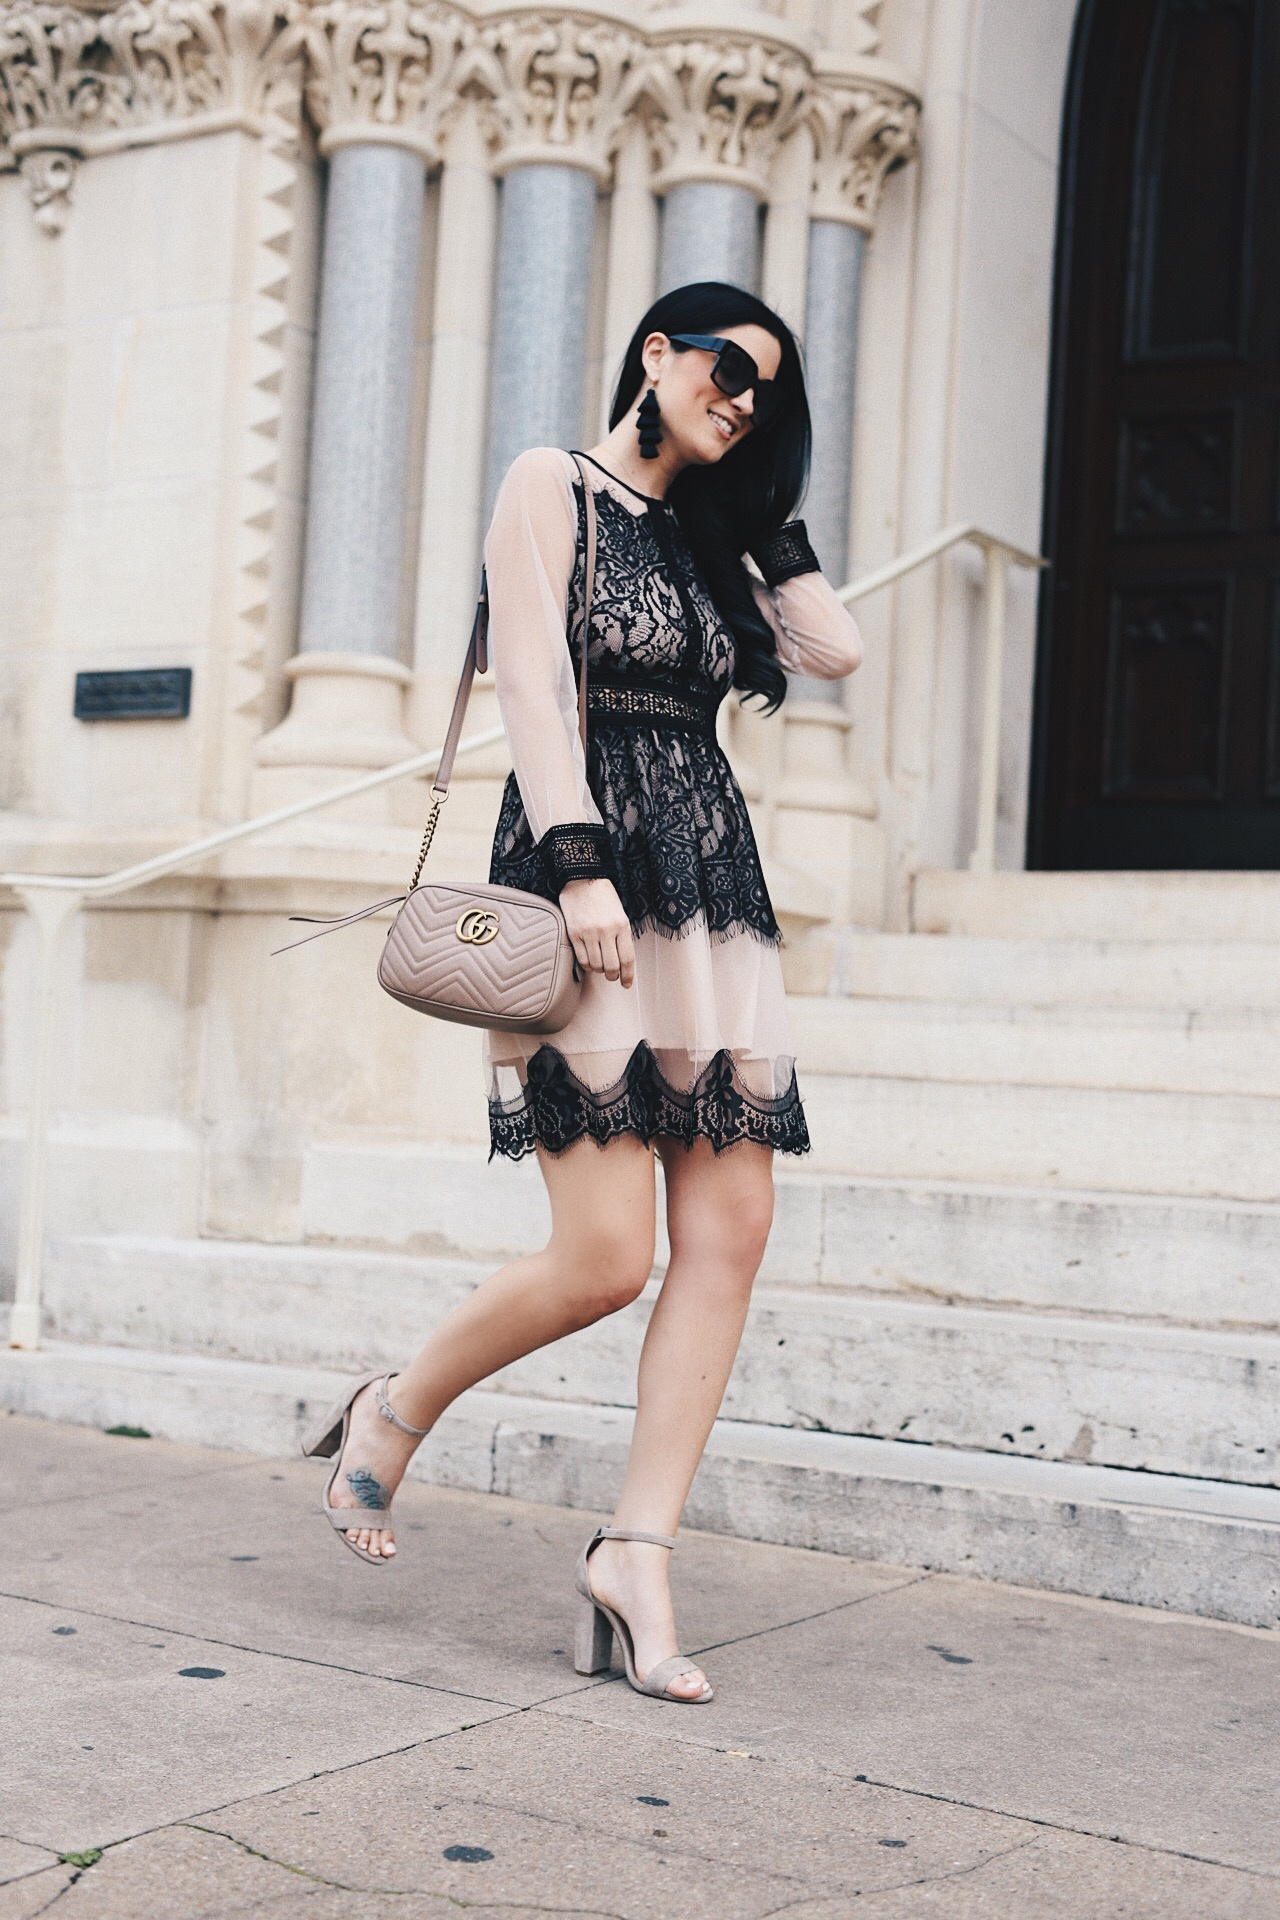 DTKAustin shares the perfect, lightweight dress that you can transition into summer for those cooler days. Gucci Marmont Small Beige Crossbody, Chicwish Dress - Sheer Black Lace Dress styled by popular Austin fashion blogger, Dressed to Kill